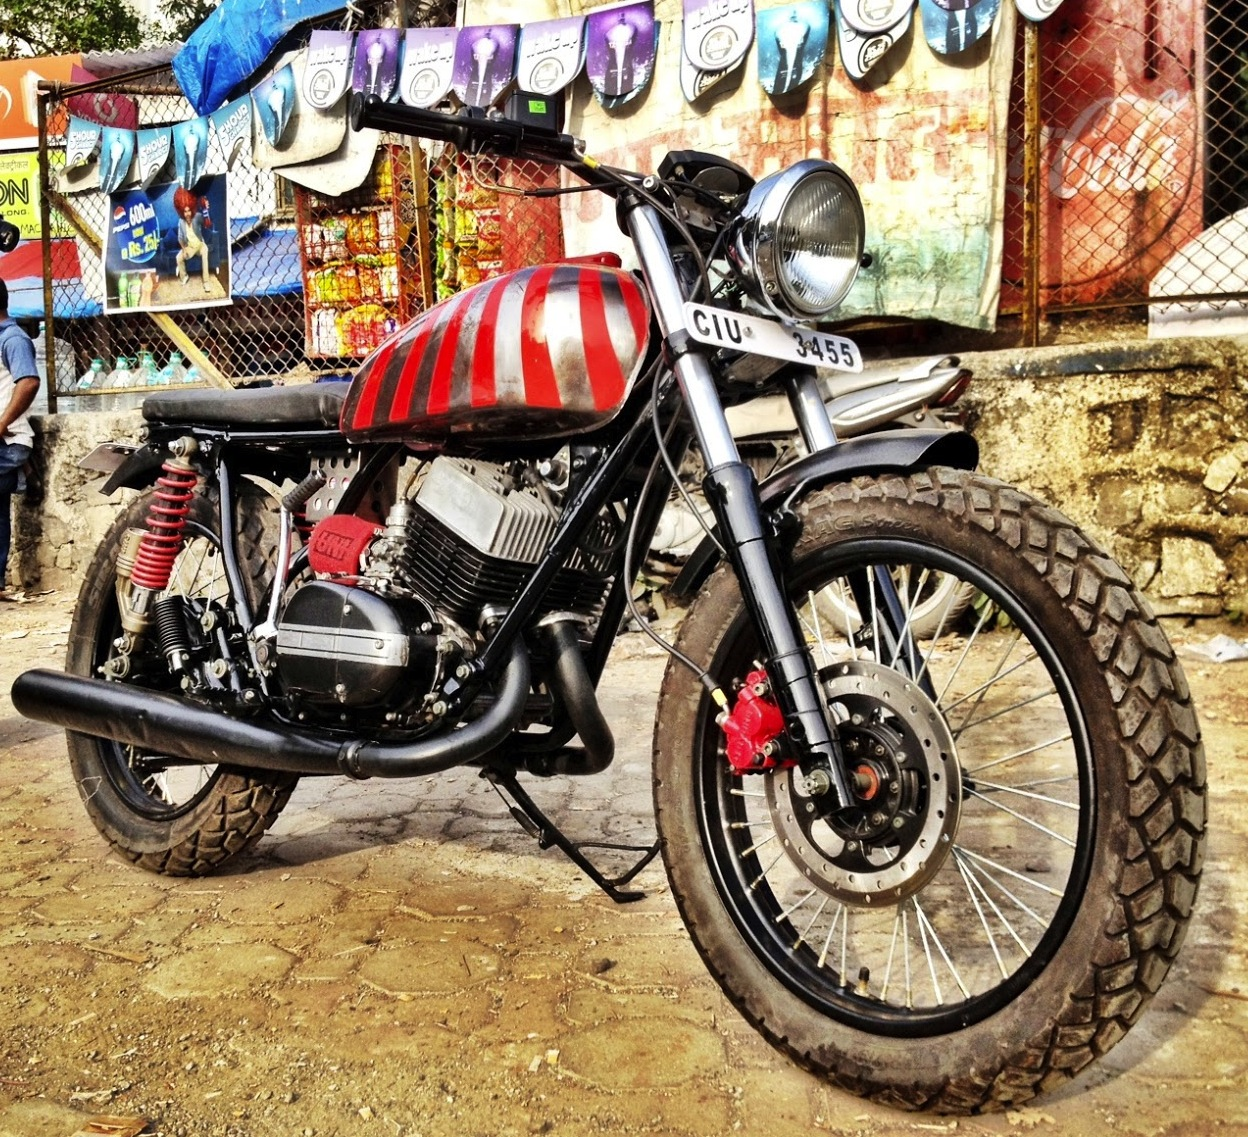 Harsh rd350image1 - Copy